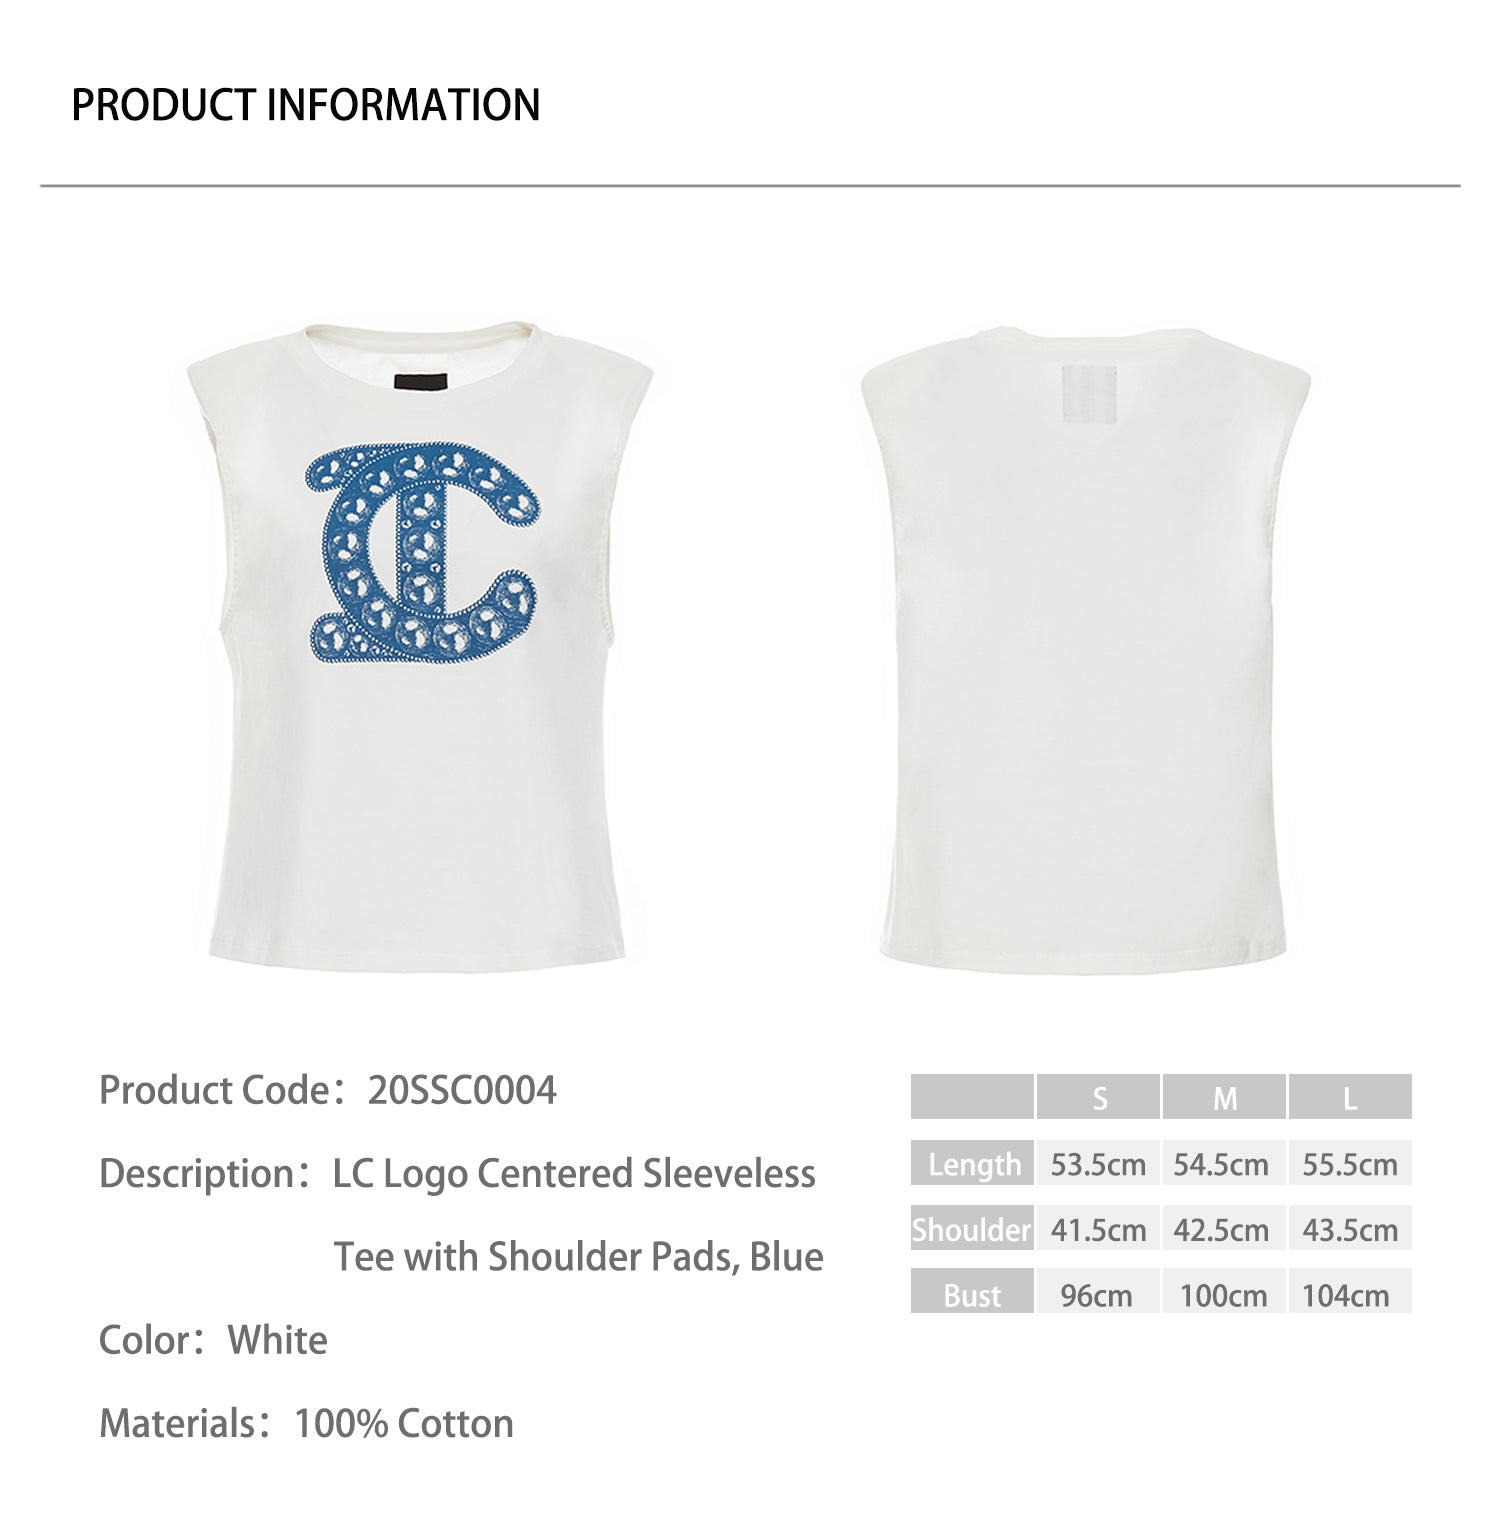 LC Logo Centered Sleeveless Tee with Shoulder Pads, Blue